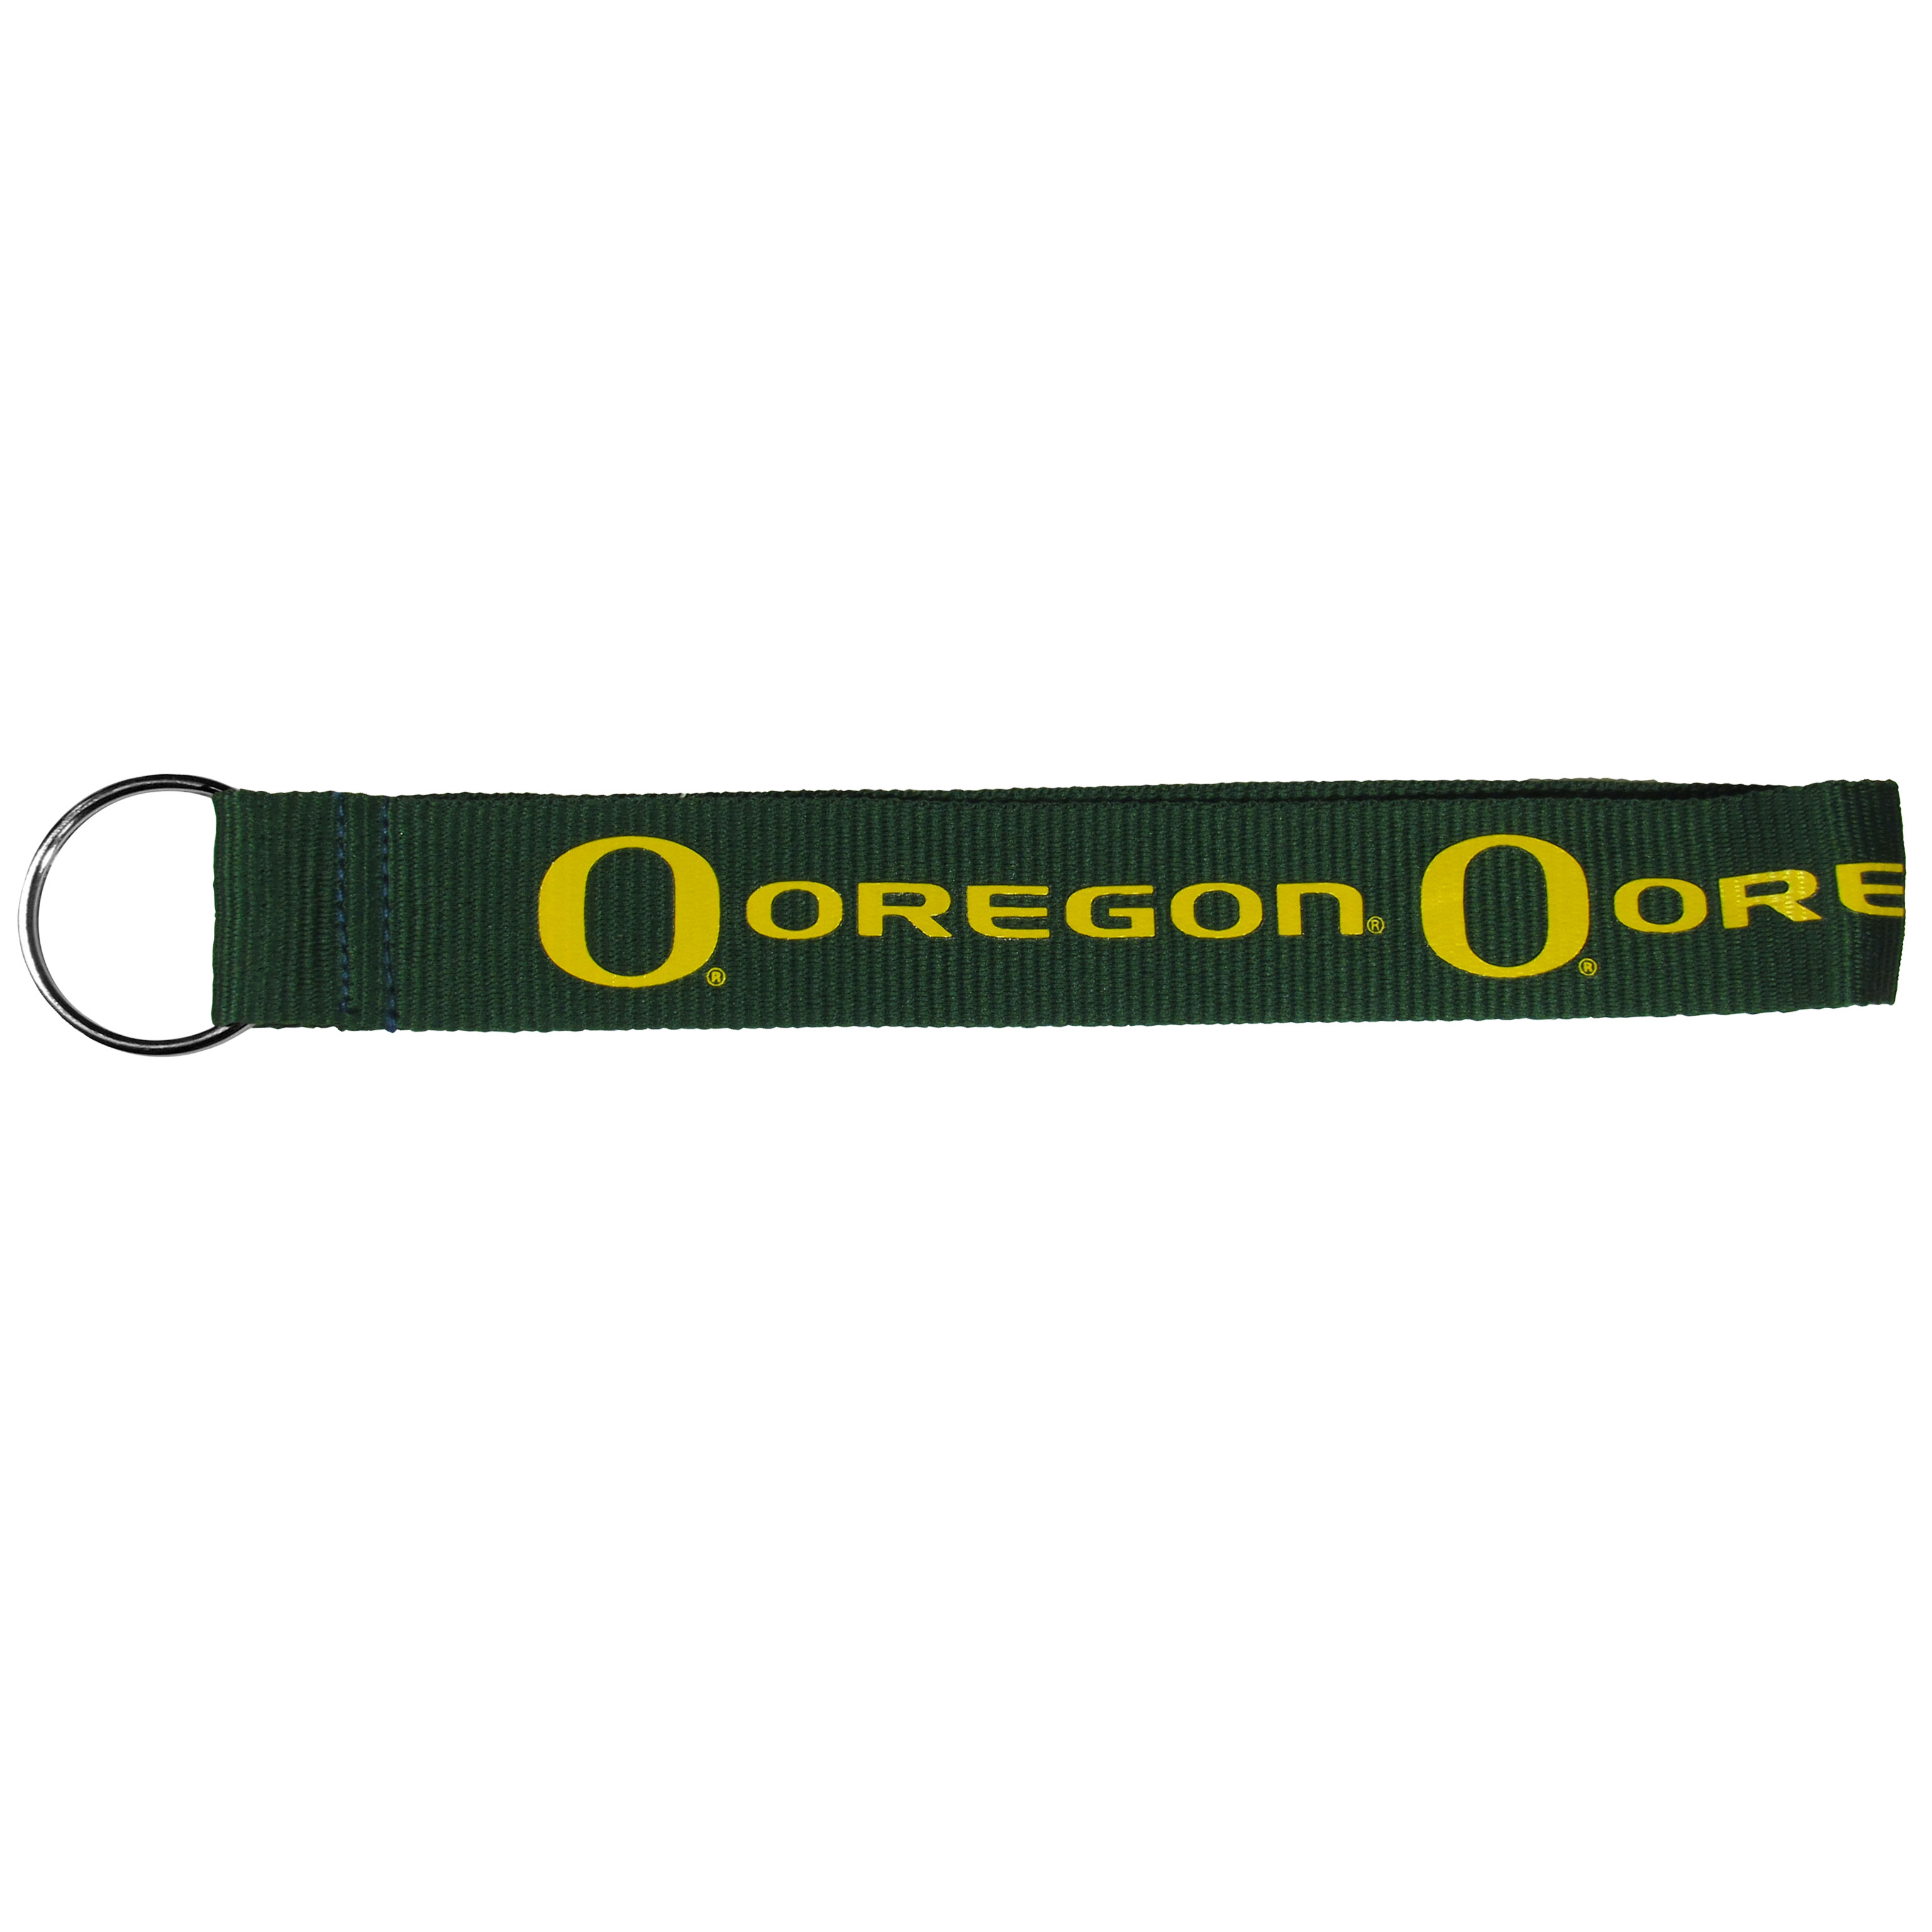 Oregon Ducks  Lanyard Key Chain - Our wrist strap lanyard key chain is made of durable and comfortable woven material and is a not only a great key chain but an easy way to keep track of your keys. The bright Oregon Ducks graffics makes this key chain easy to find in gym bags, purses and in the dreaded couch cushions.